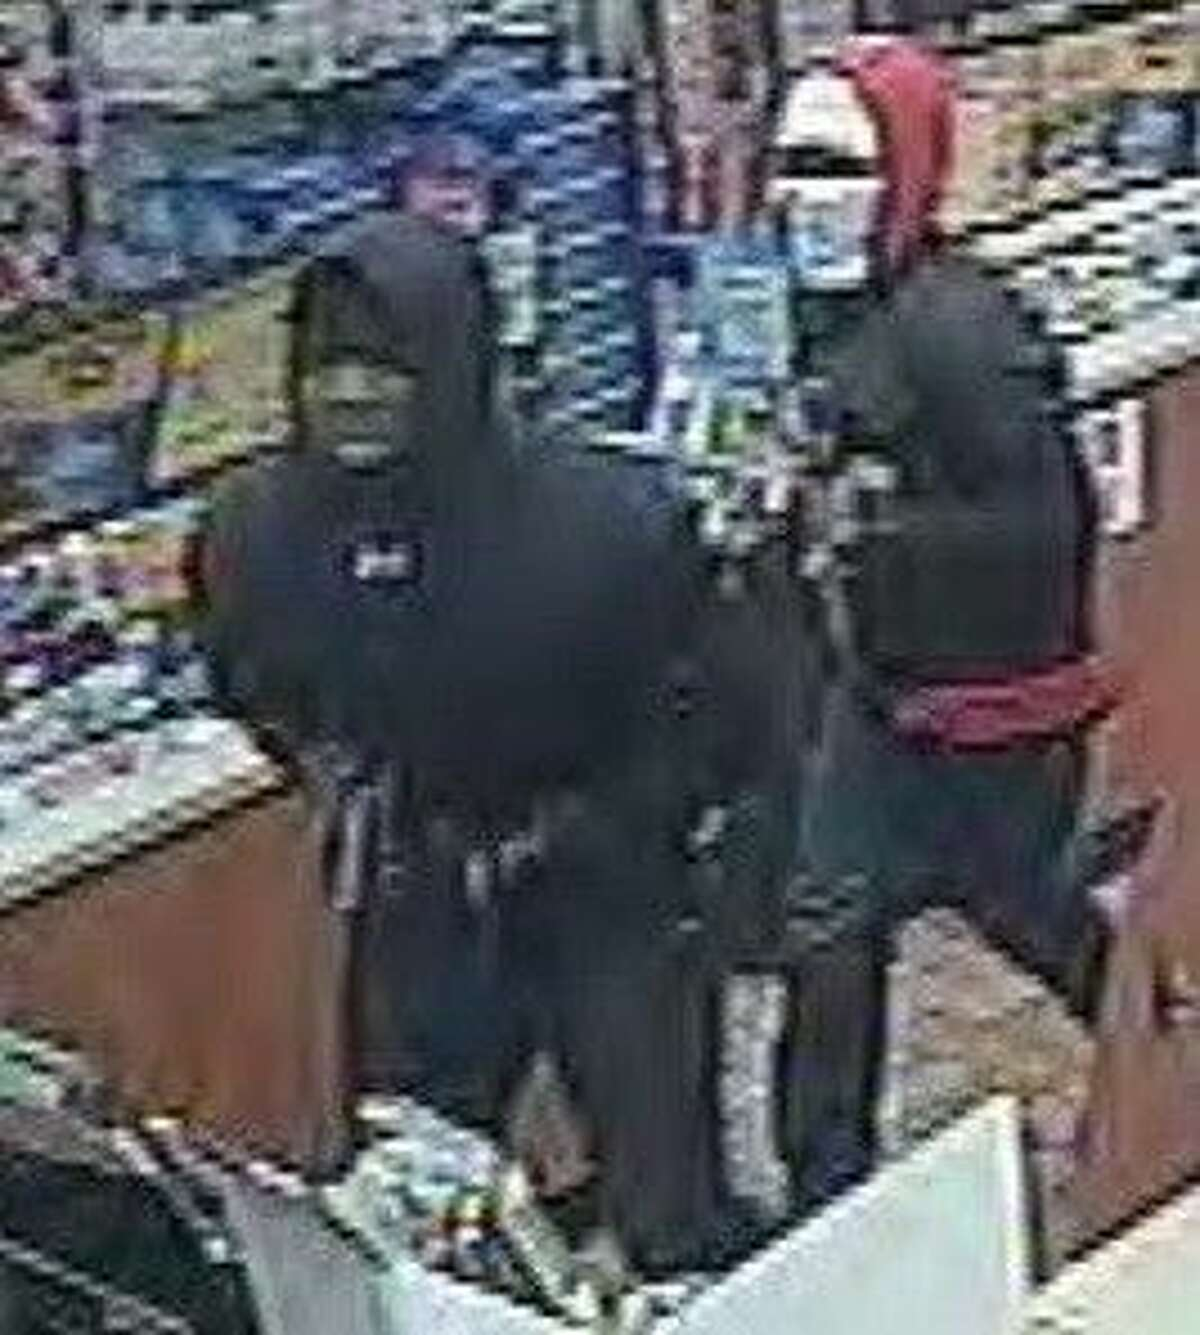 The FBCSO is searching for perpetrators involved in the armed robbery of a Valero gas station on Bissonnet Street in Houston. Suspects beat the store clerk, causing injury, and demanded cash from the register.